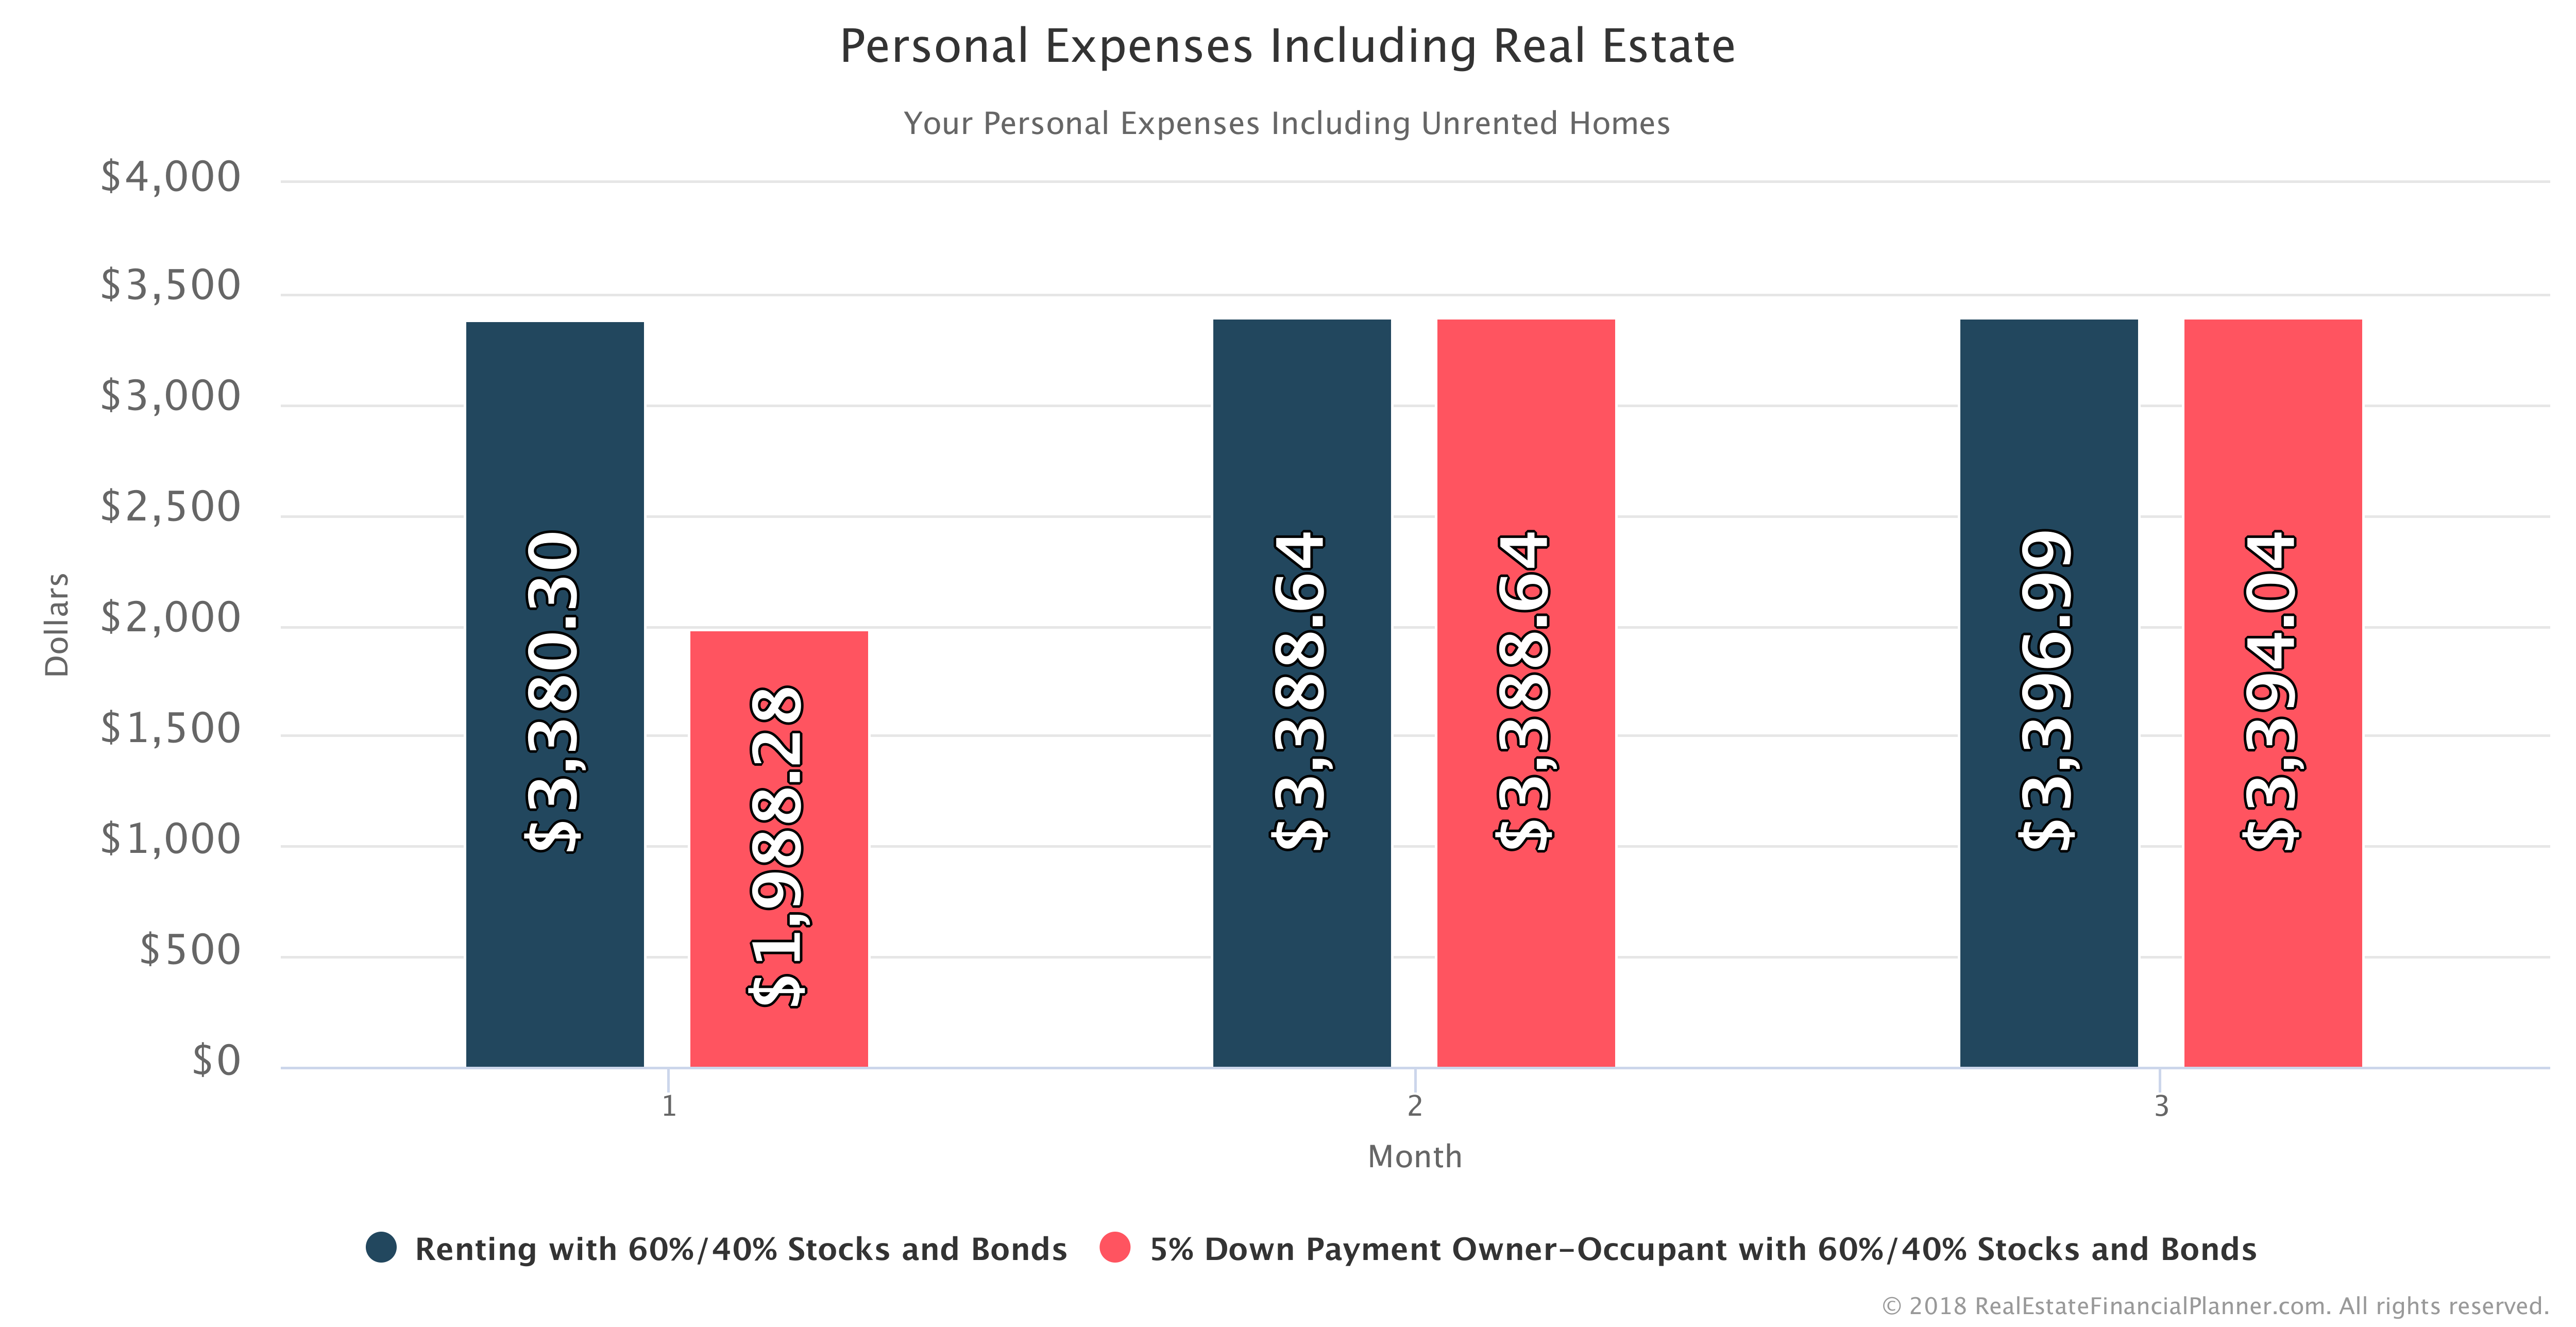 Why Month 2 - Comparing 2 Scenarios Renter vs Homeowner - Personal Expenses Including Real Estate - Months 1-3